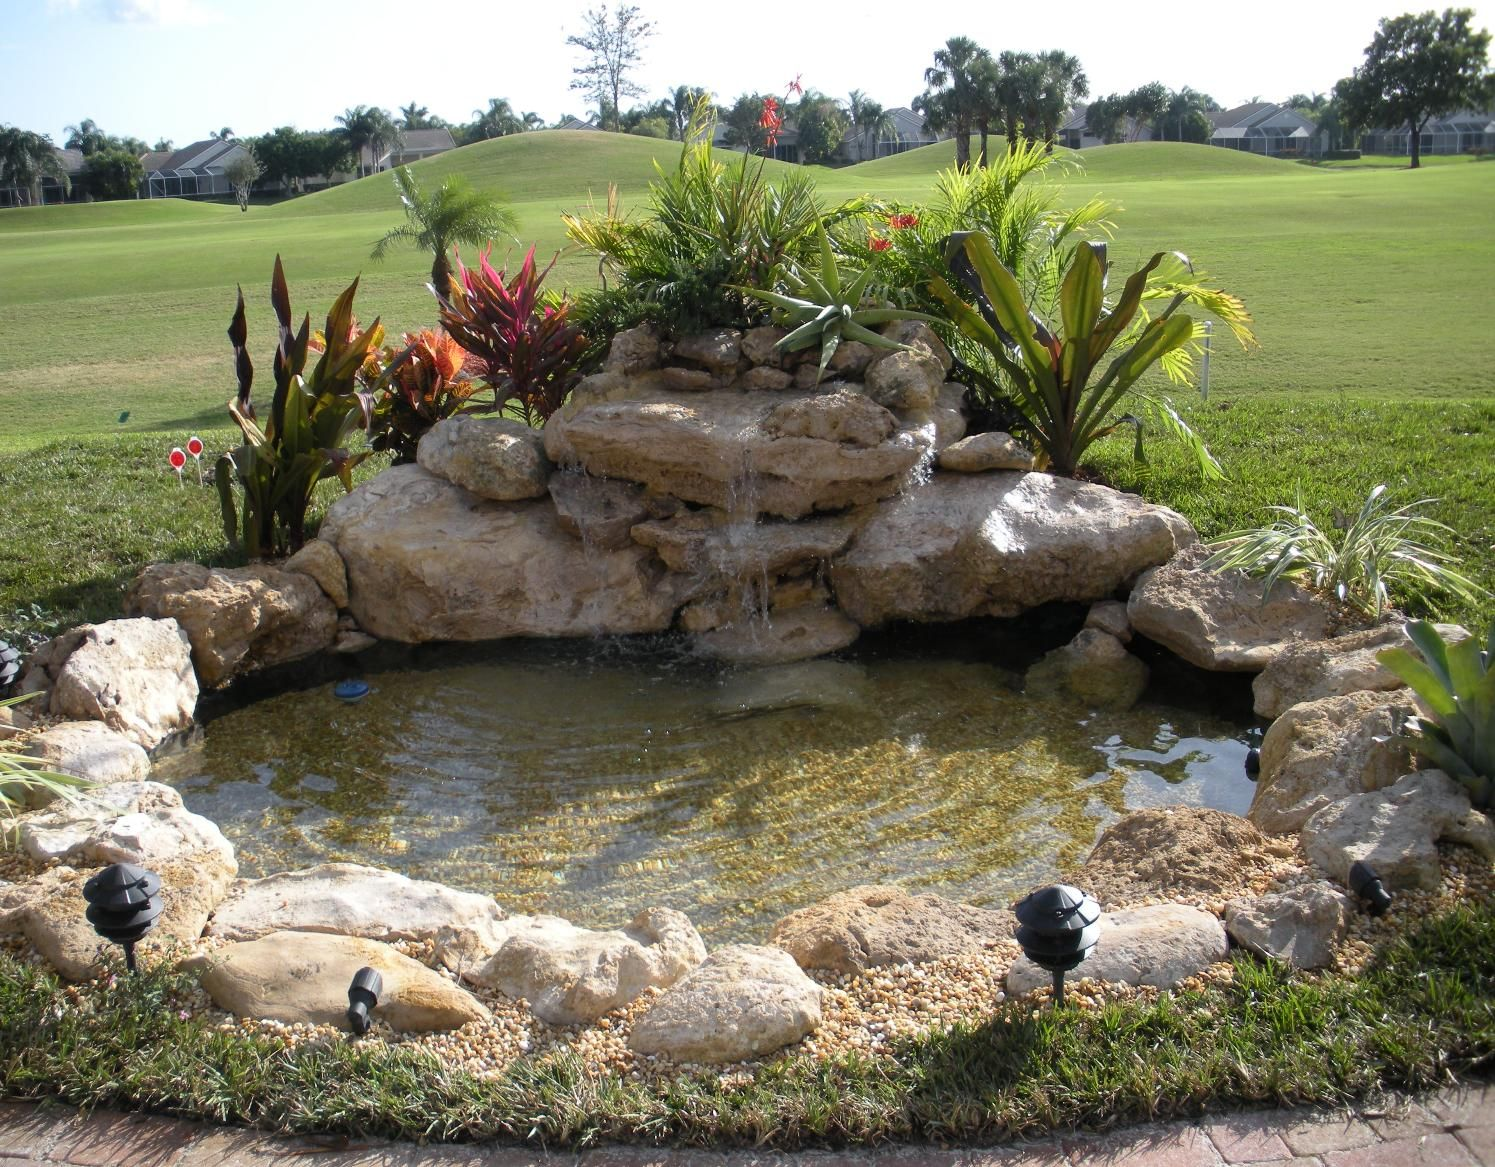 Landscaping waterfalls and fish ponds ways to maintain for Fish ponds for small gardens